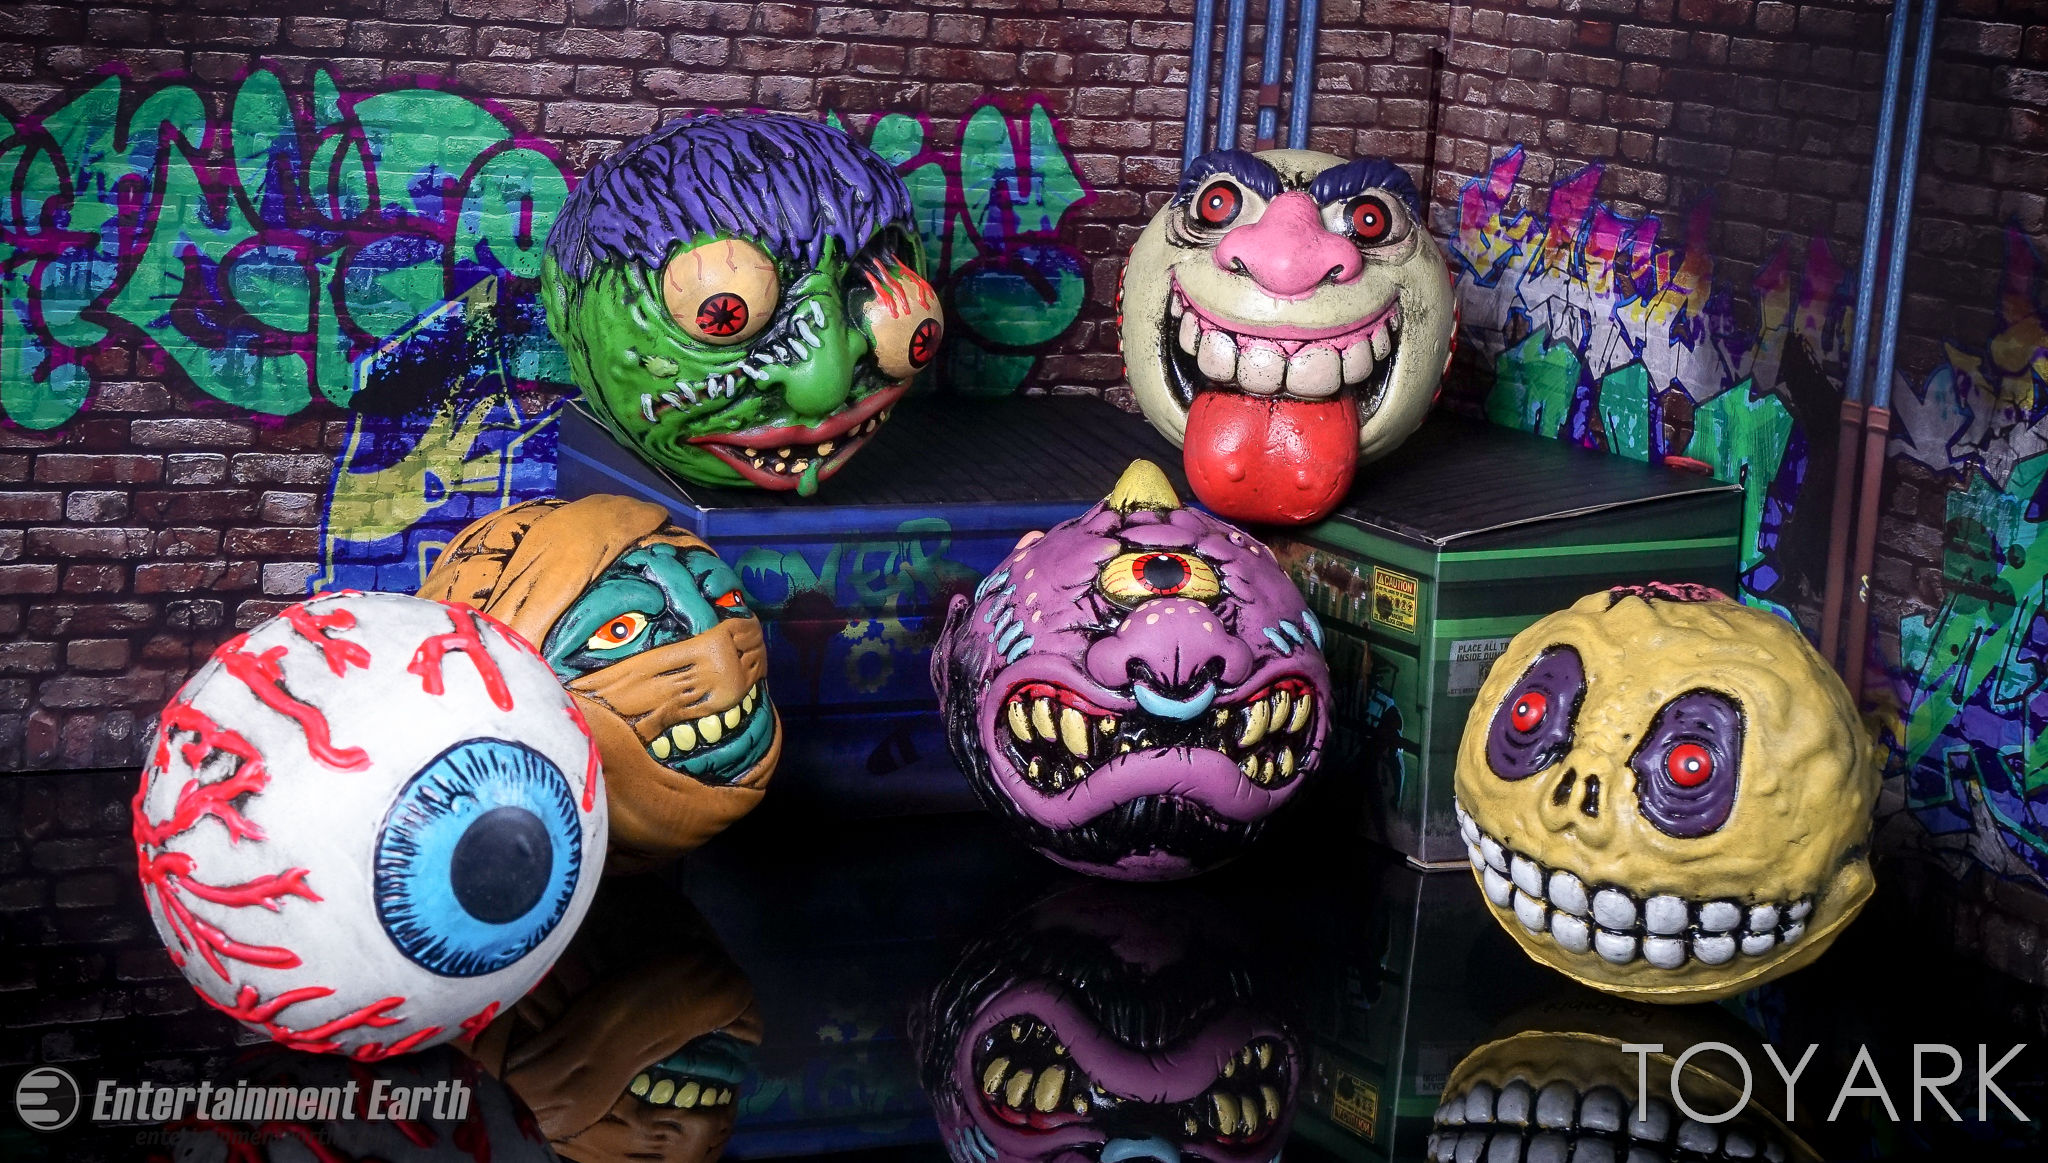 http://news.toyark.com/wp-content/uploads/sites/4/2017/03/Kidrobot-Foam-Madballs-028.jpg